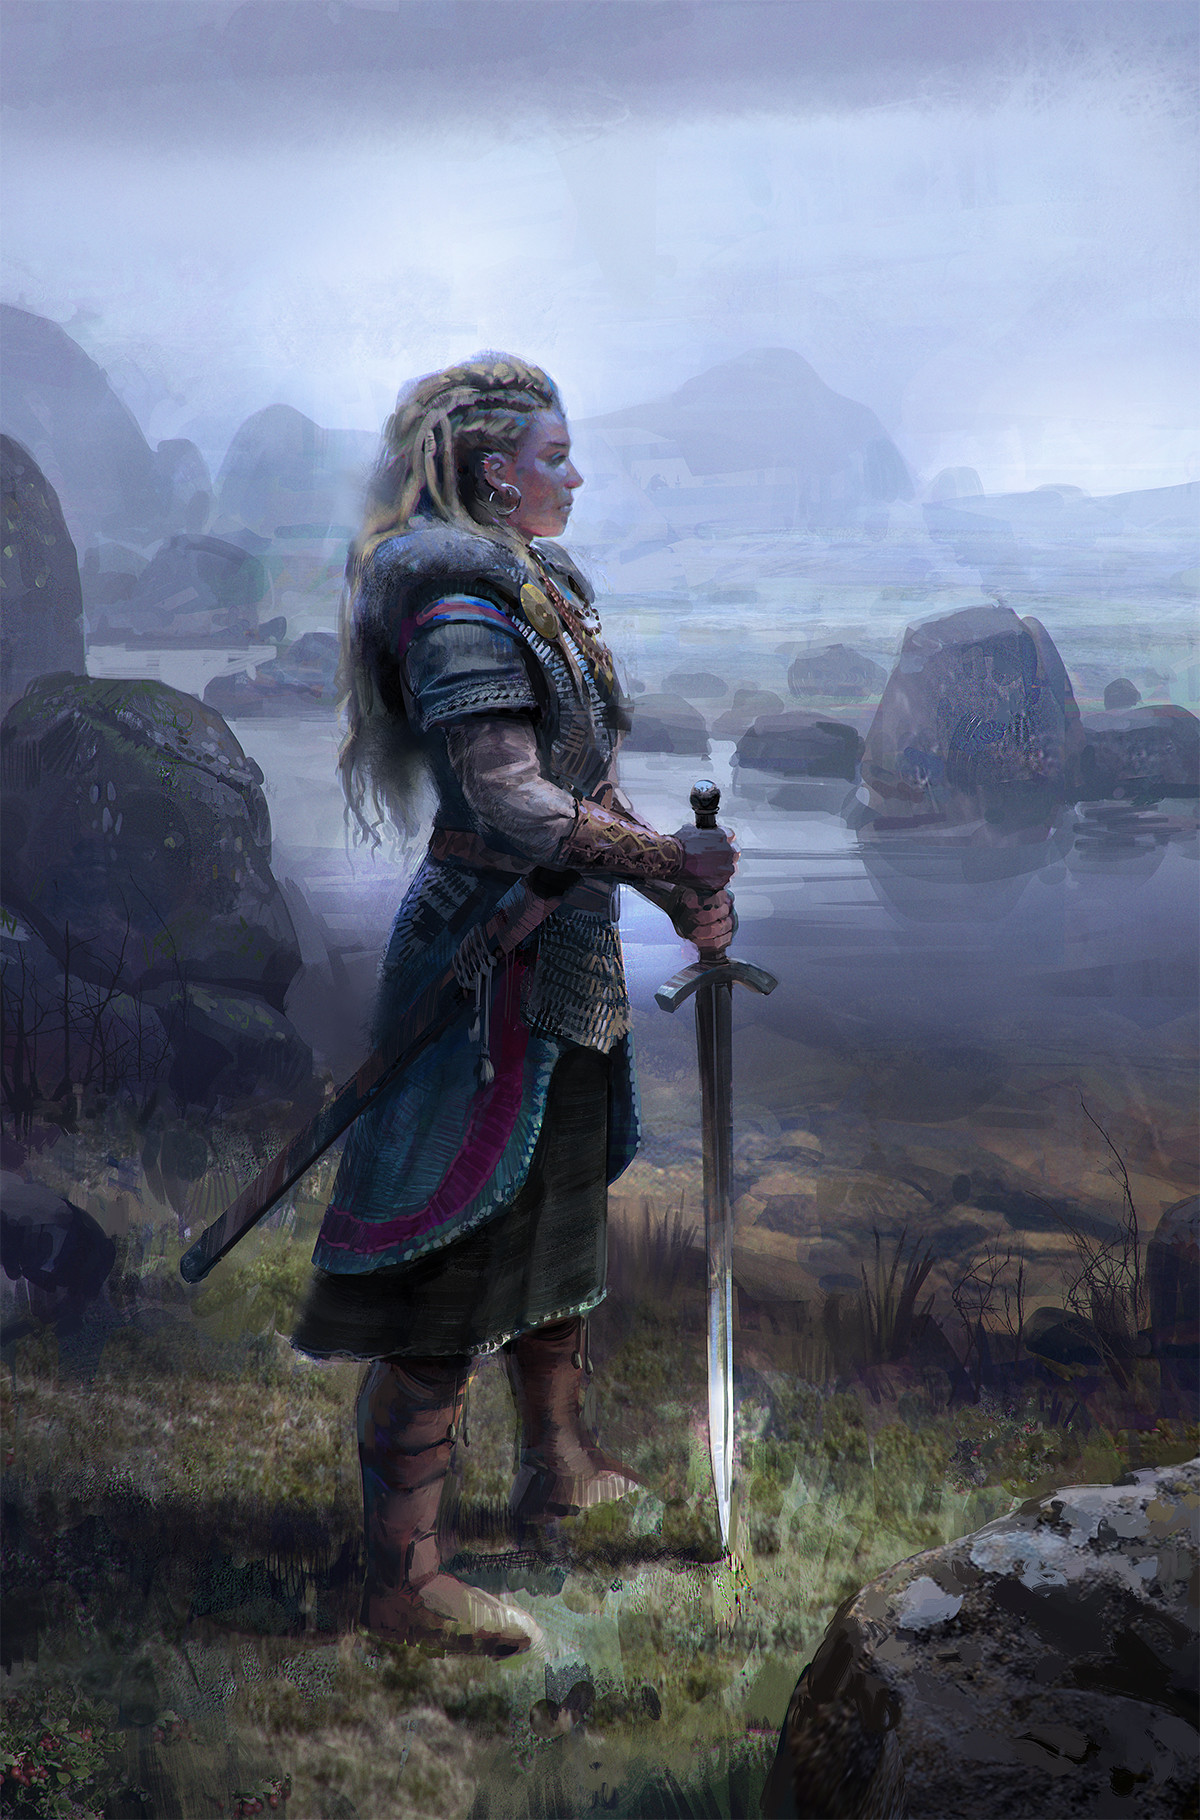 ArtStation - Viking Woman, John Wallin Liberto